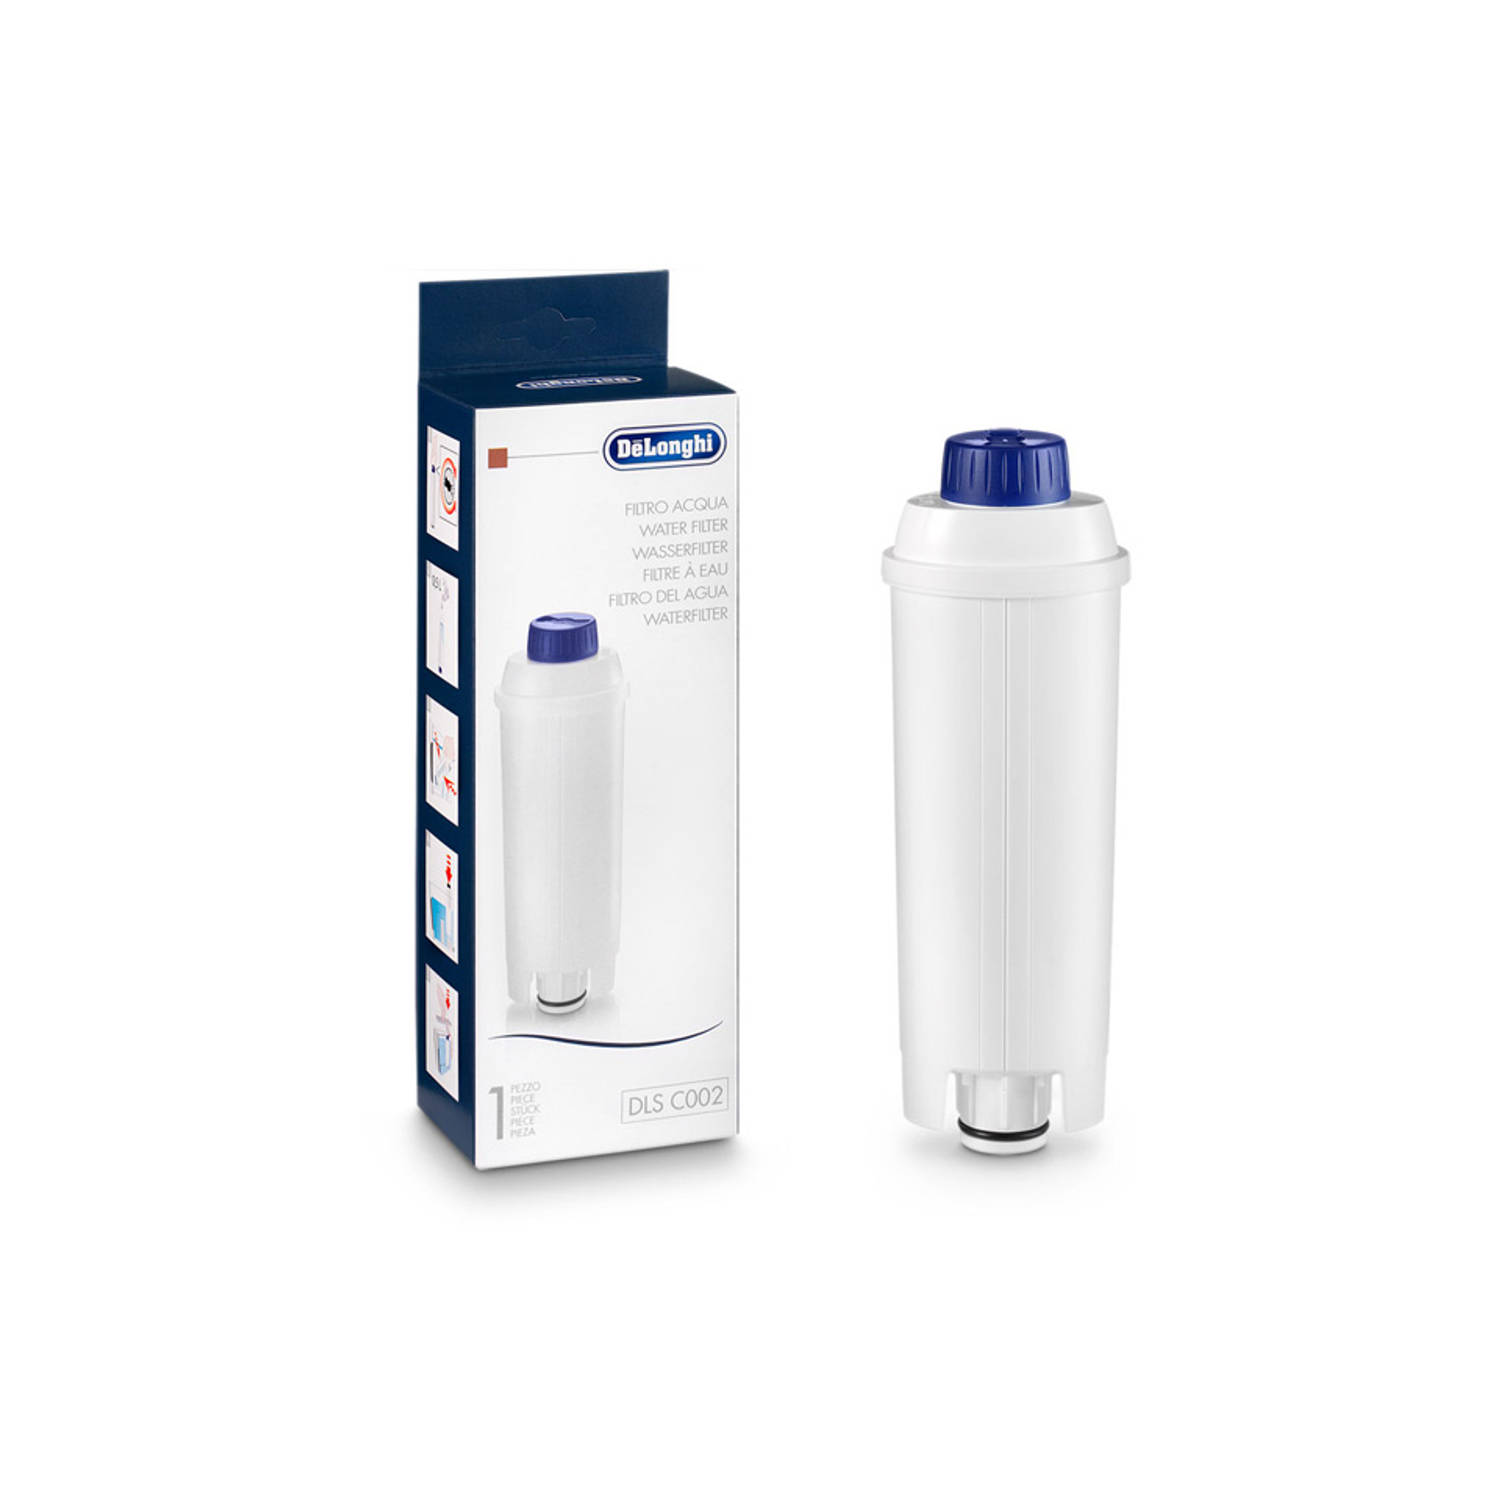 DeLonghi koffiemachine DLS waterfilter